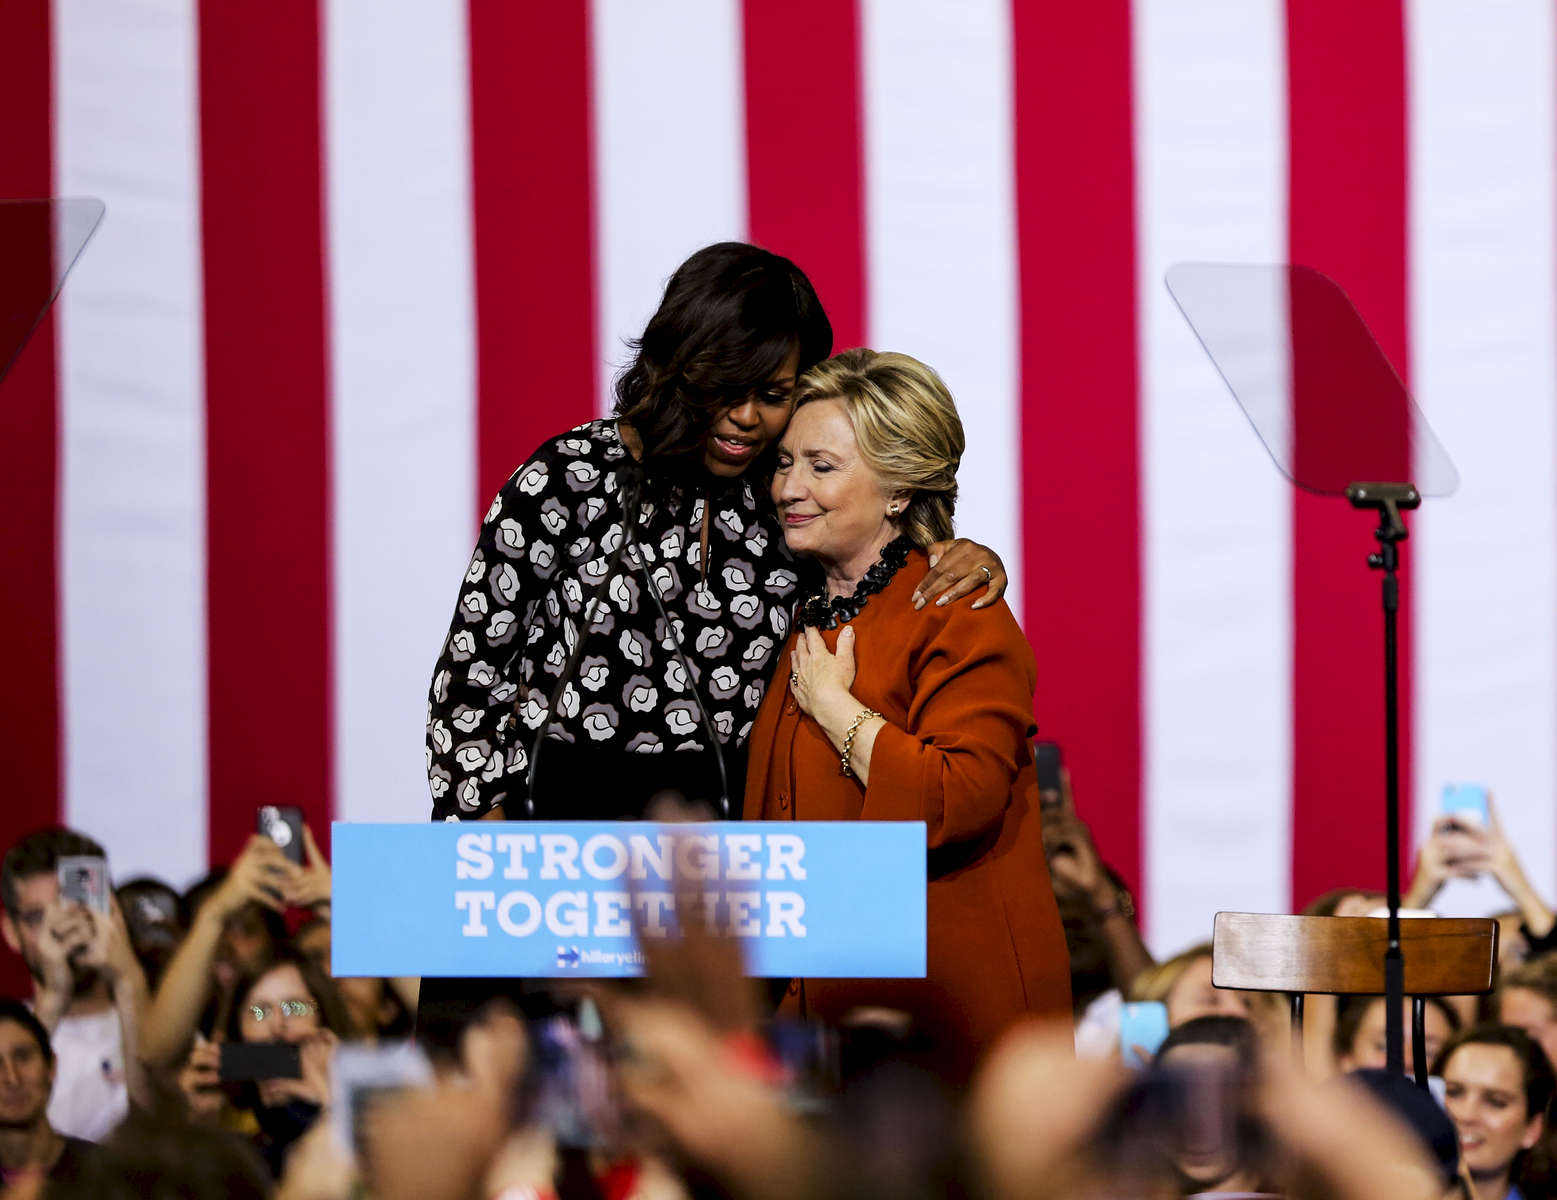 Presidential candidate Hillary Clinton participates in a rally with First Lady Michelle Obama in North Carolina.